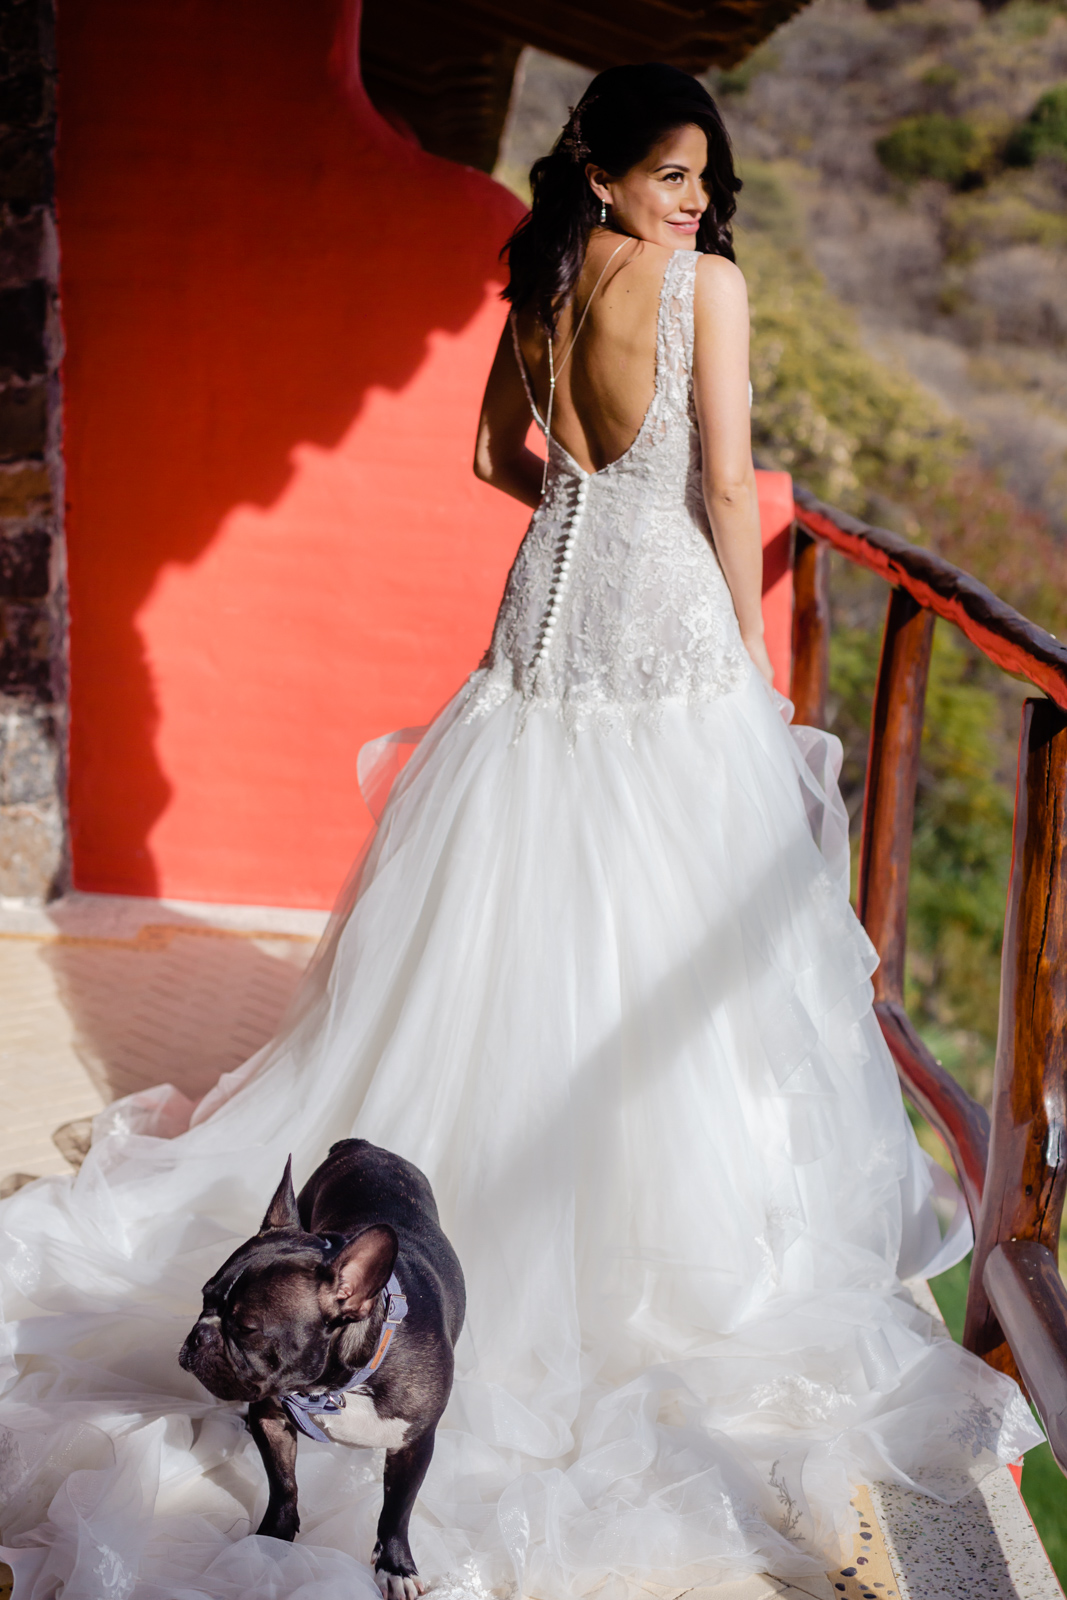 bride ready before the ceremony with the dog on the dress